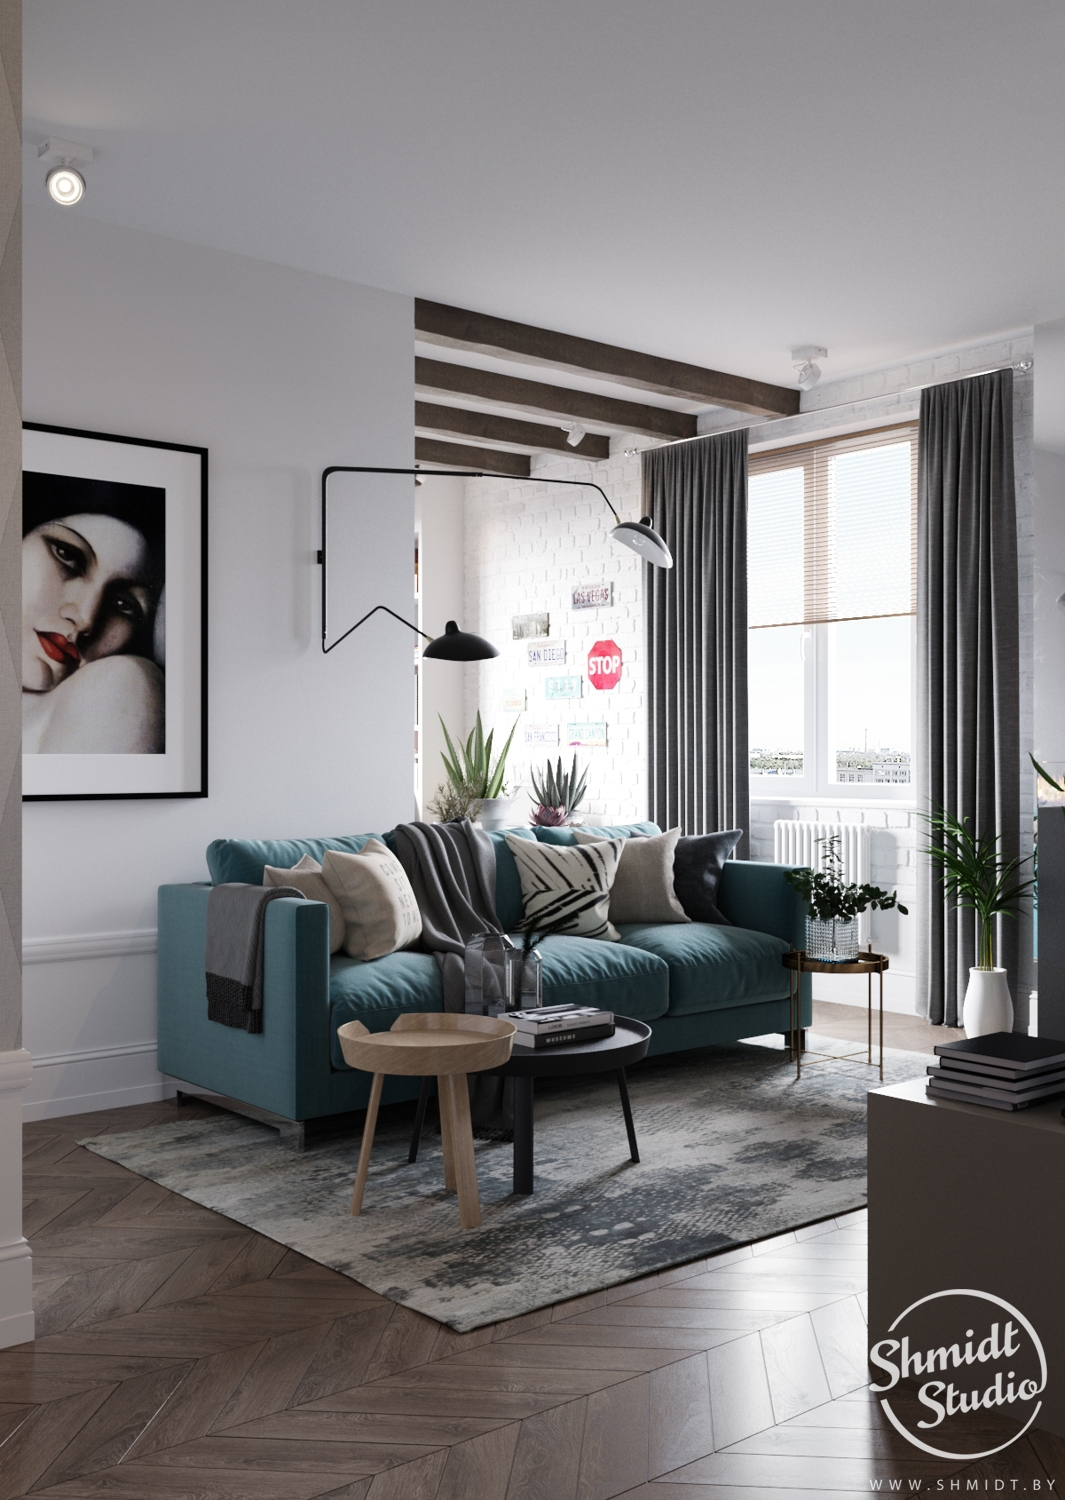 A Scandinavian Chic Style 3 Bedroom Apartment For A Young Family images 1